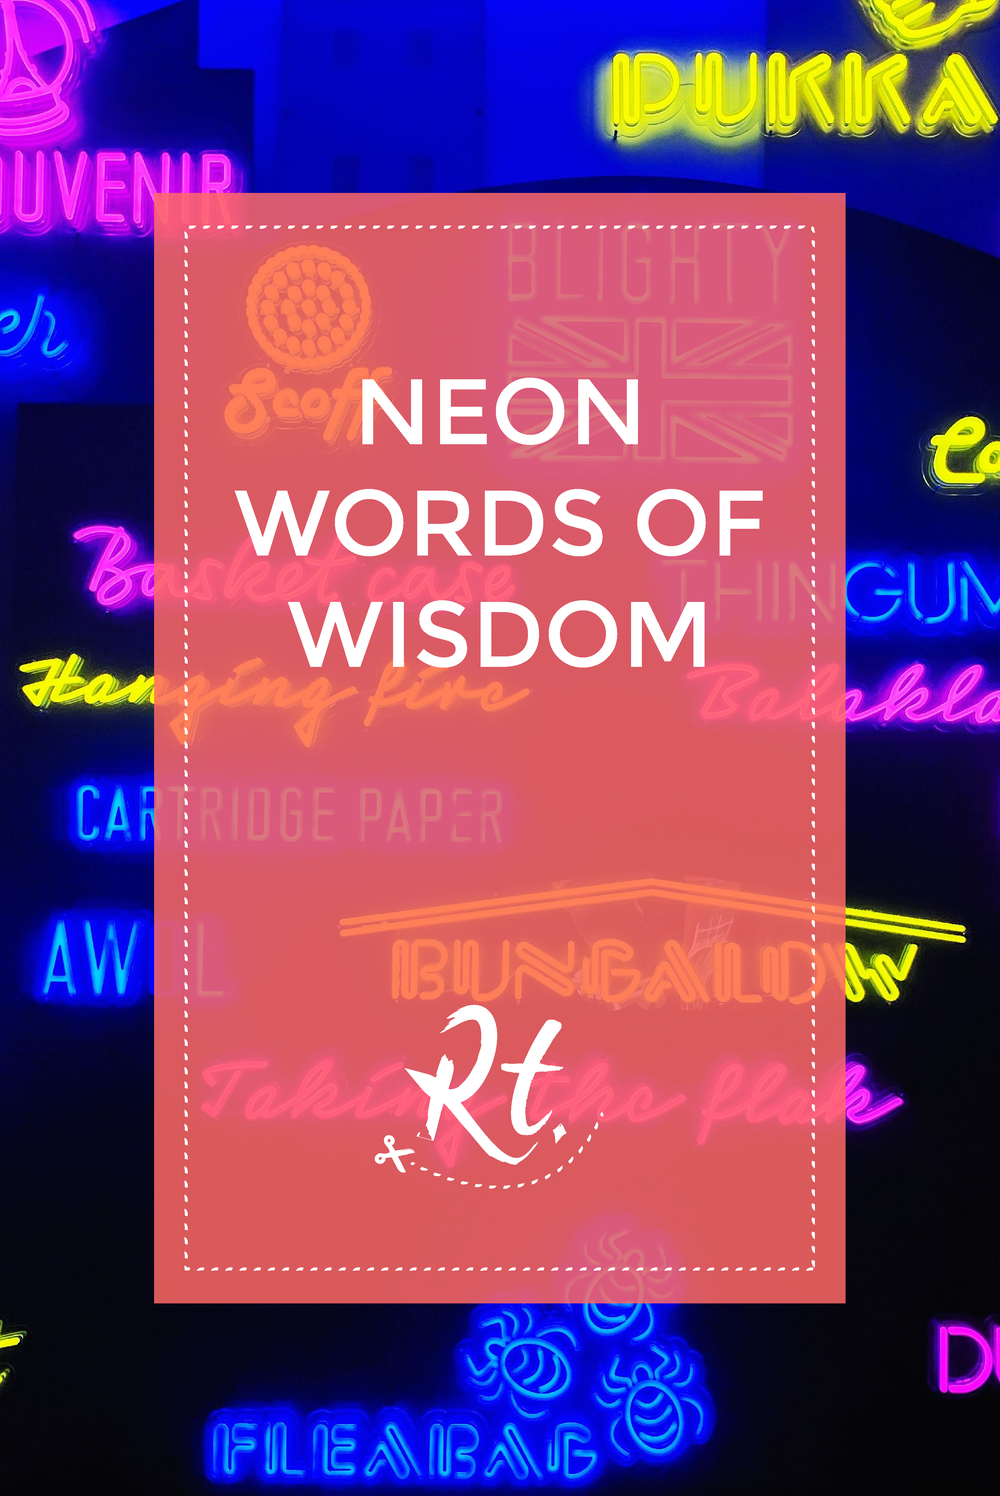 Neon Words of Wisdom by Rosh Thanki, neon typography of army chat of military language